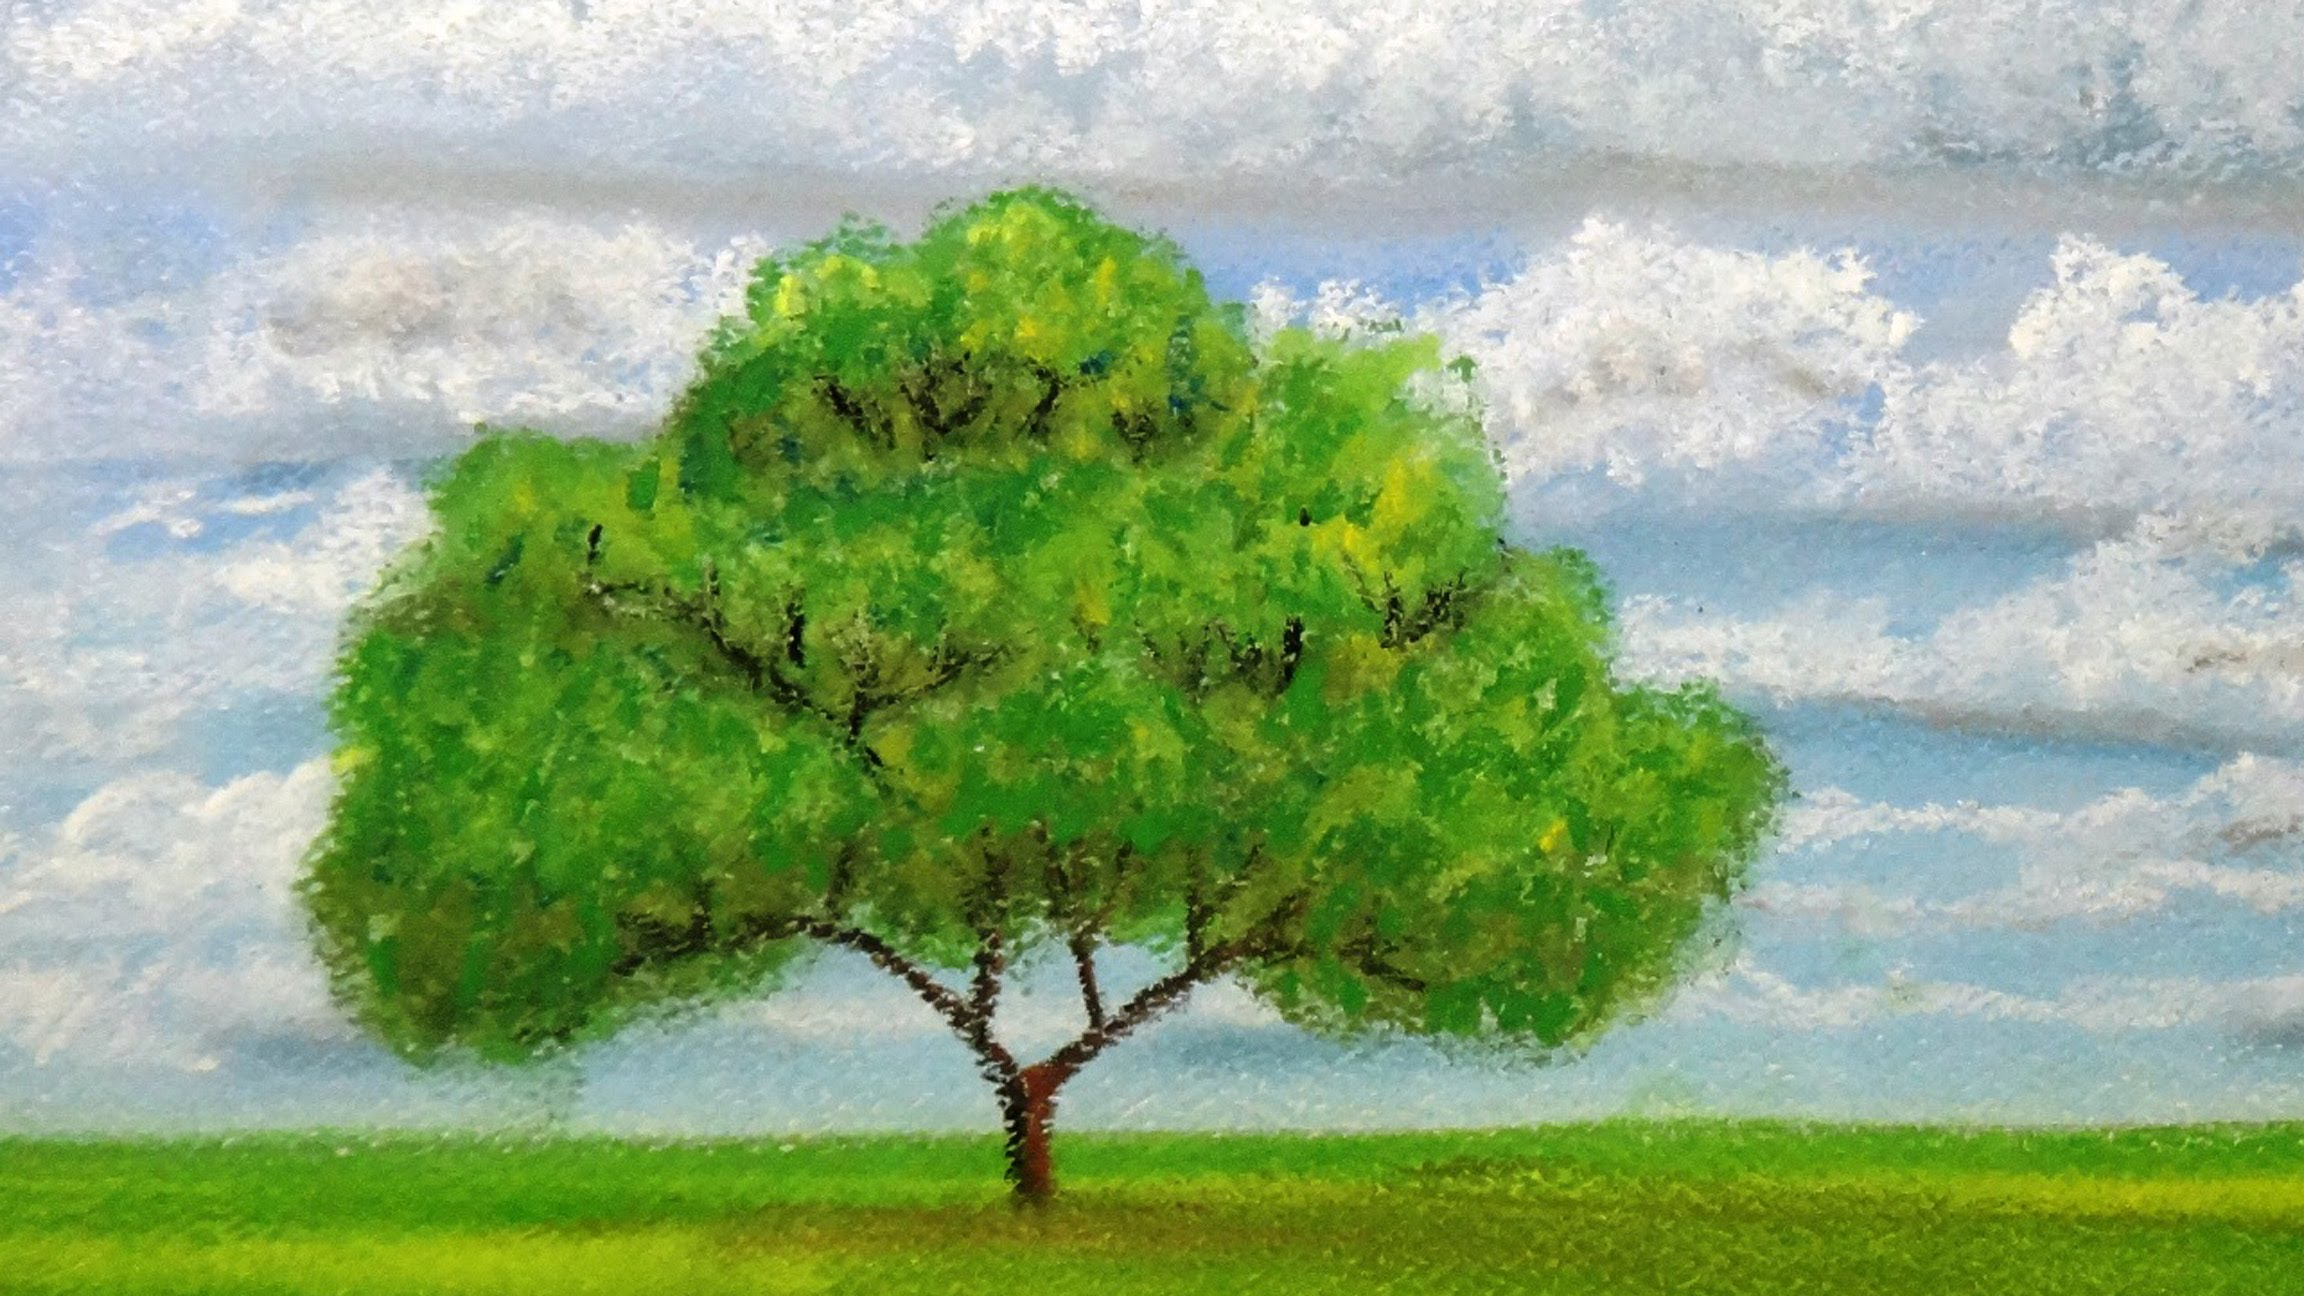 How to draw a tree at distance with pastels - YouTube